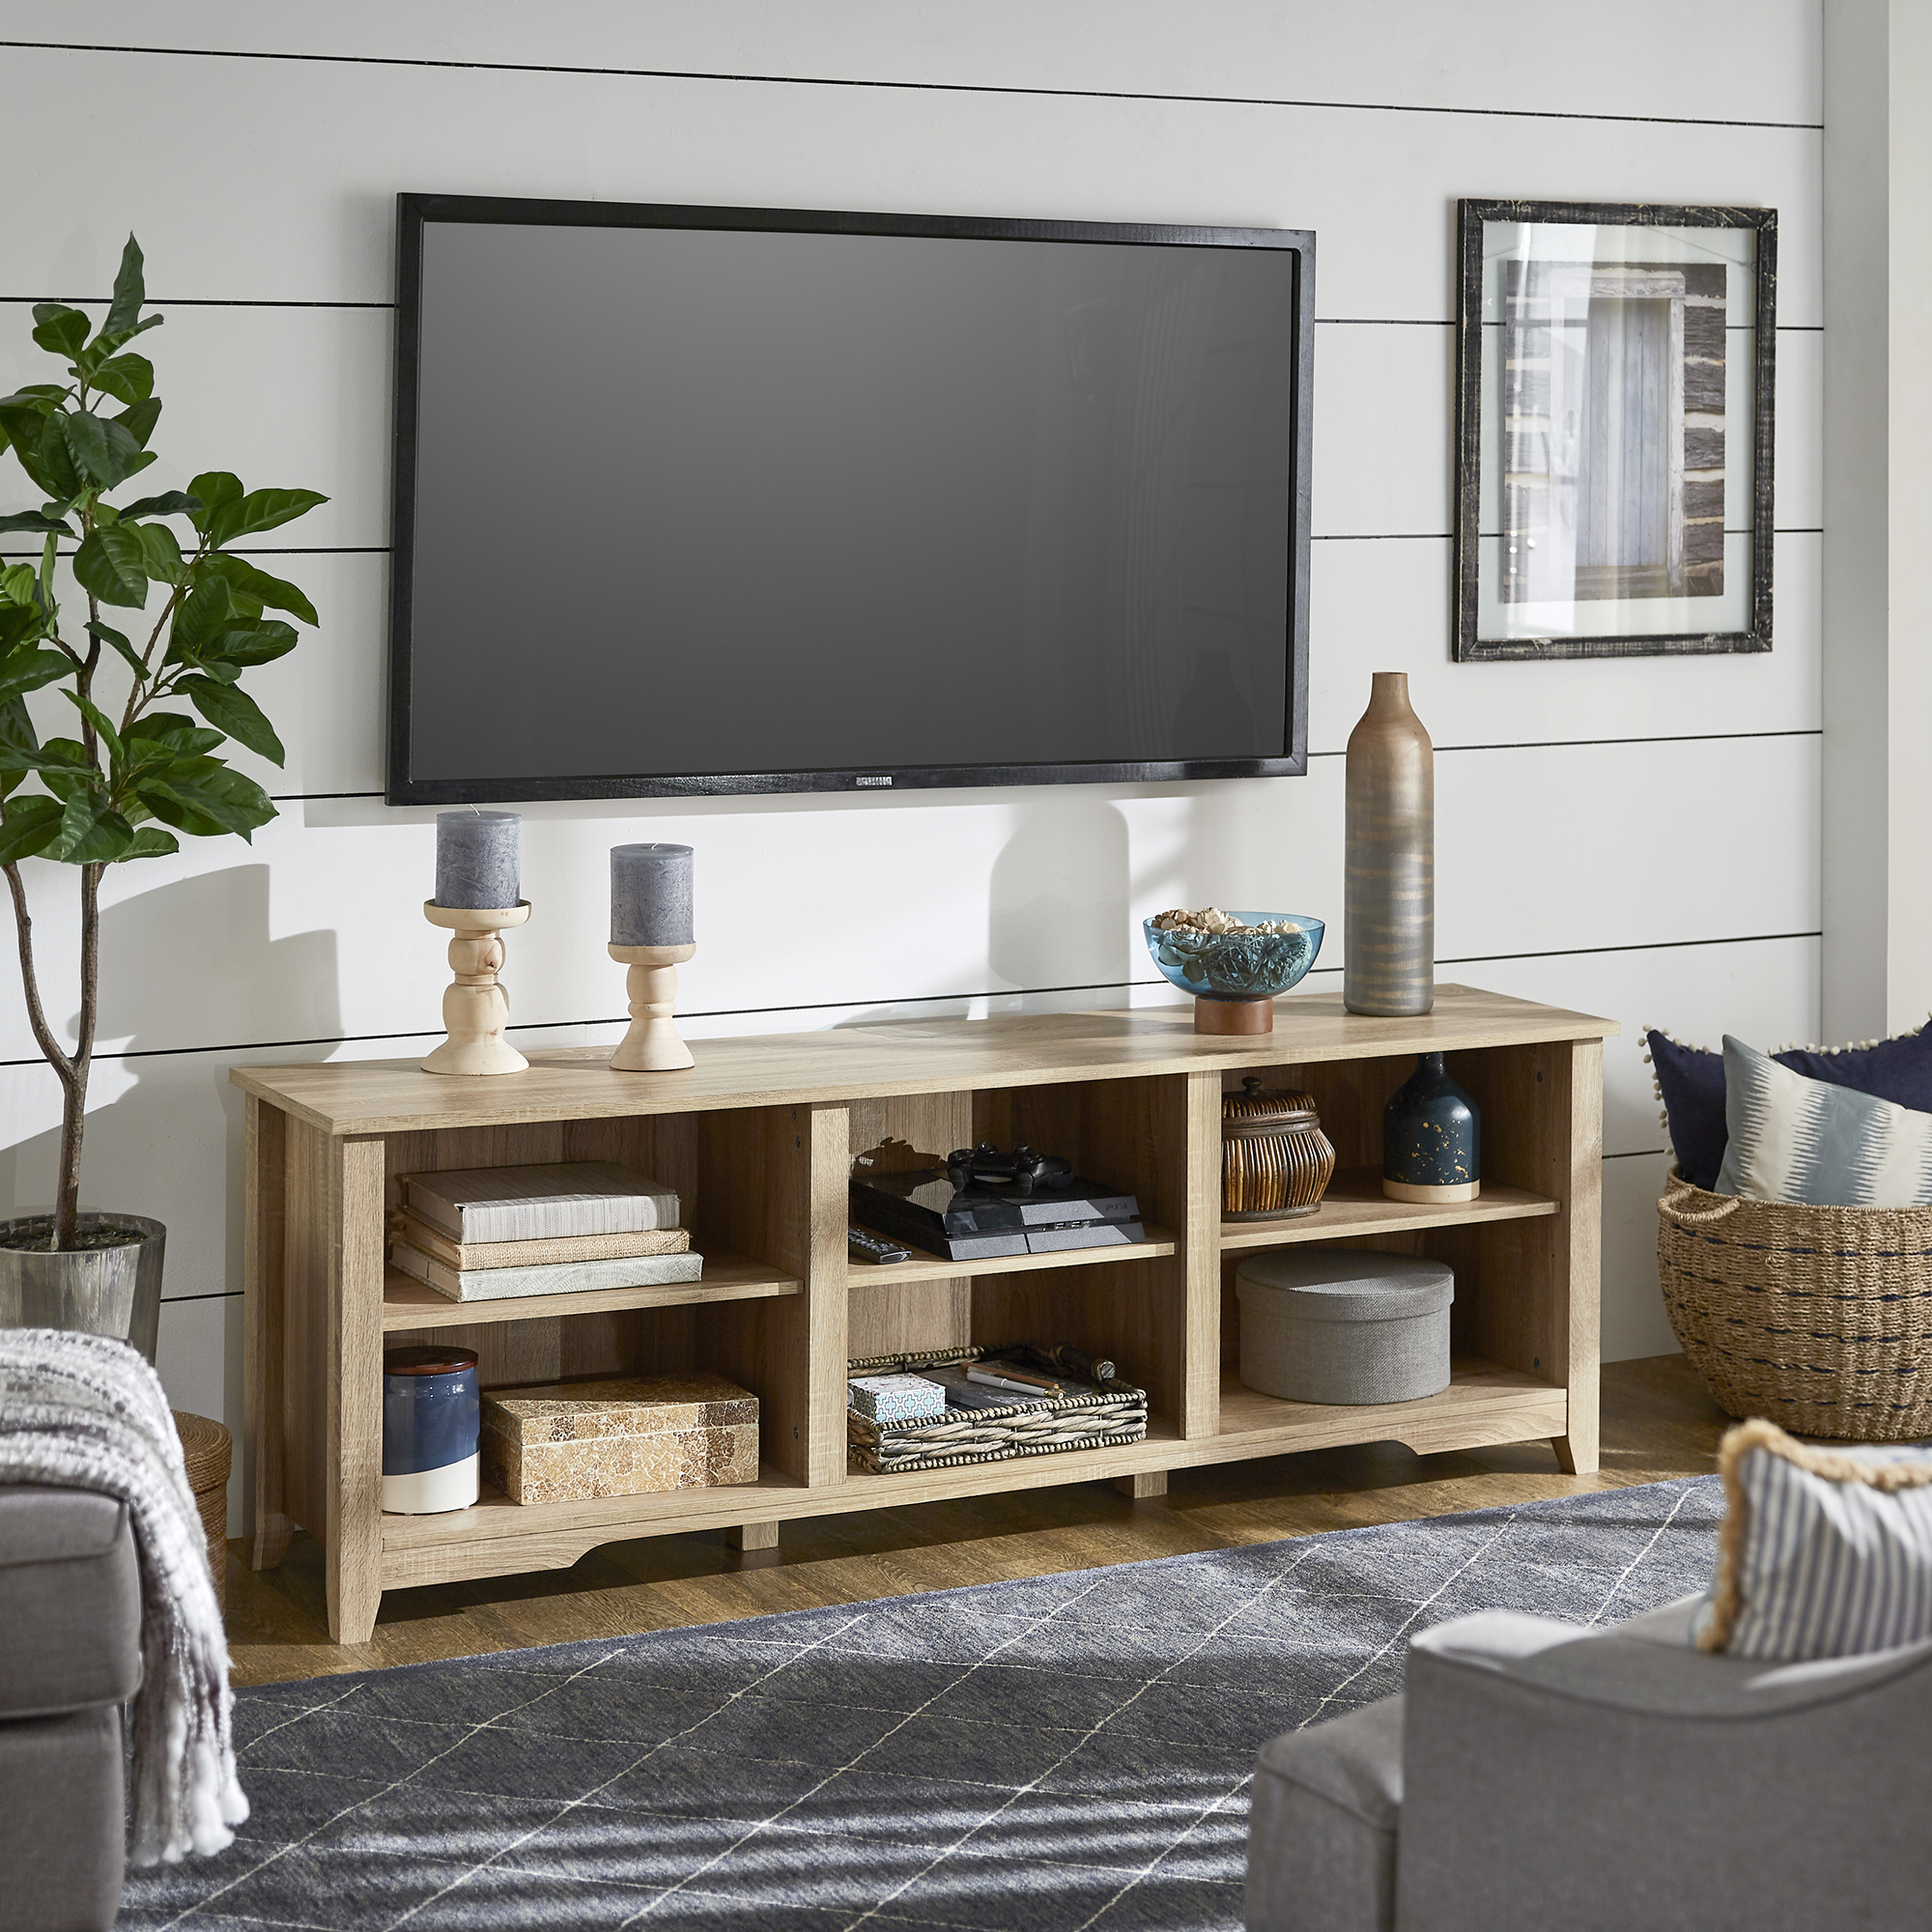 """Most Current Broward Tv Stands For Tvs Up To 70"""" In Oak Finish 70 Inch Tv Stand – Inspire Q Home (View 12 of 25)"""